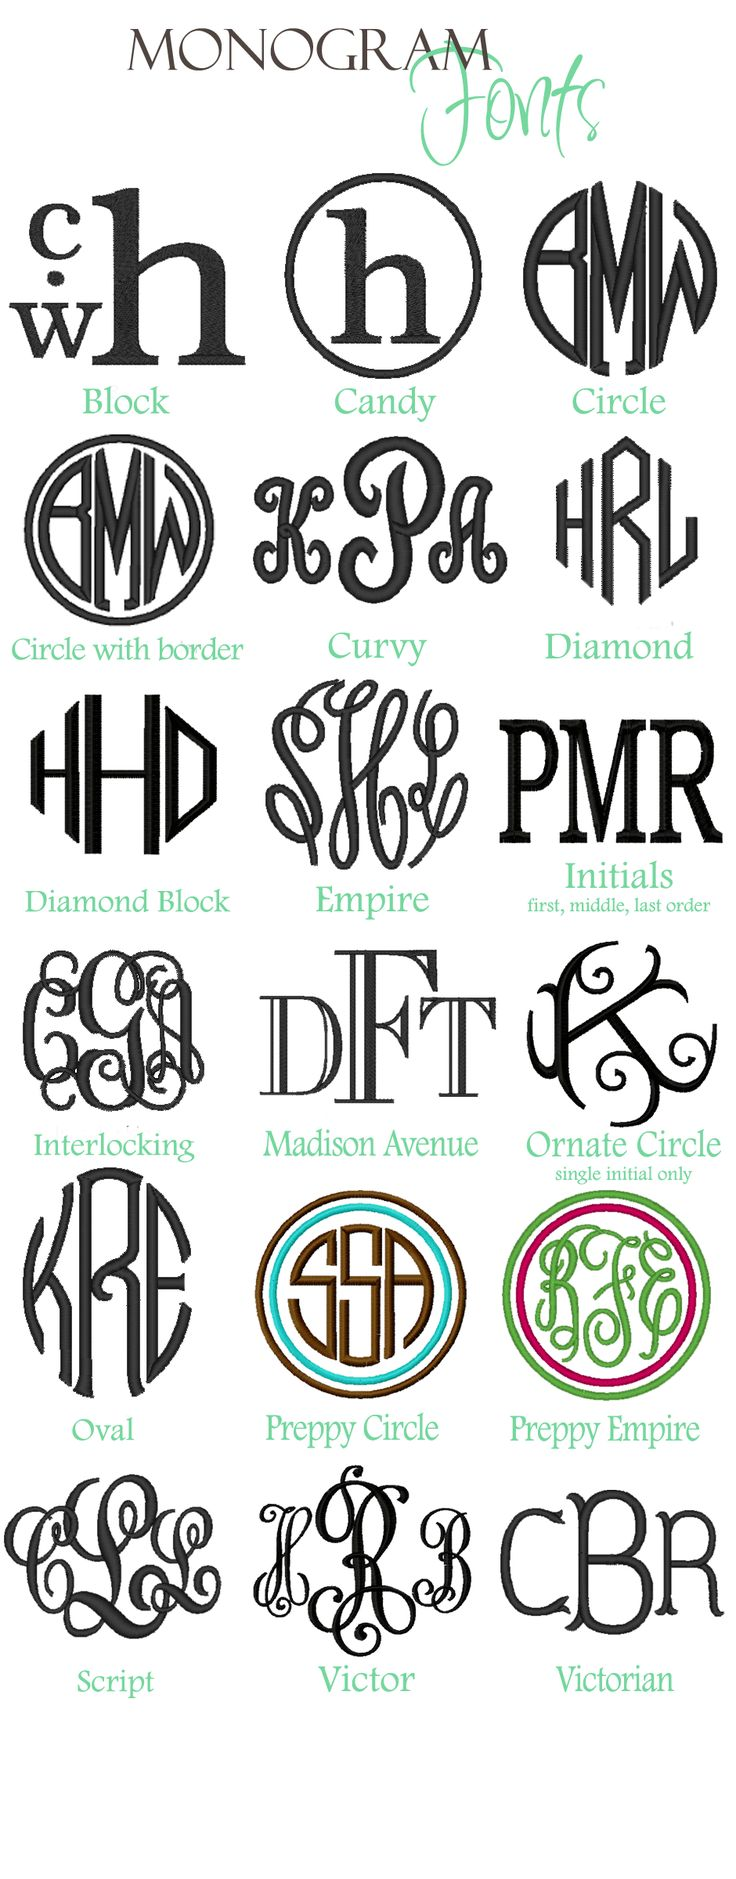 monogram | Monogram Styles Name Styles Thread Colors Vinyl Decal Fonts Vinyl ...